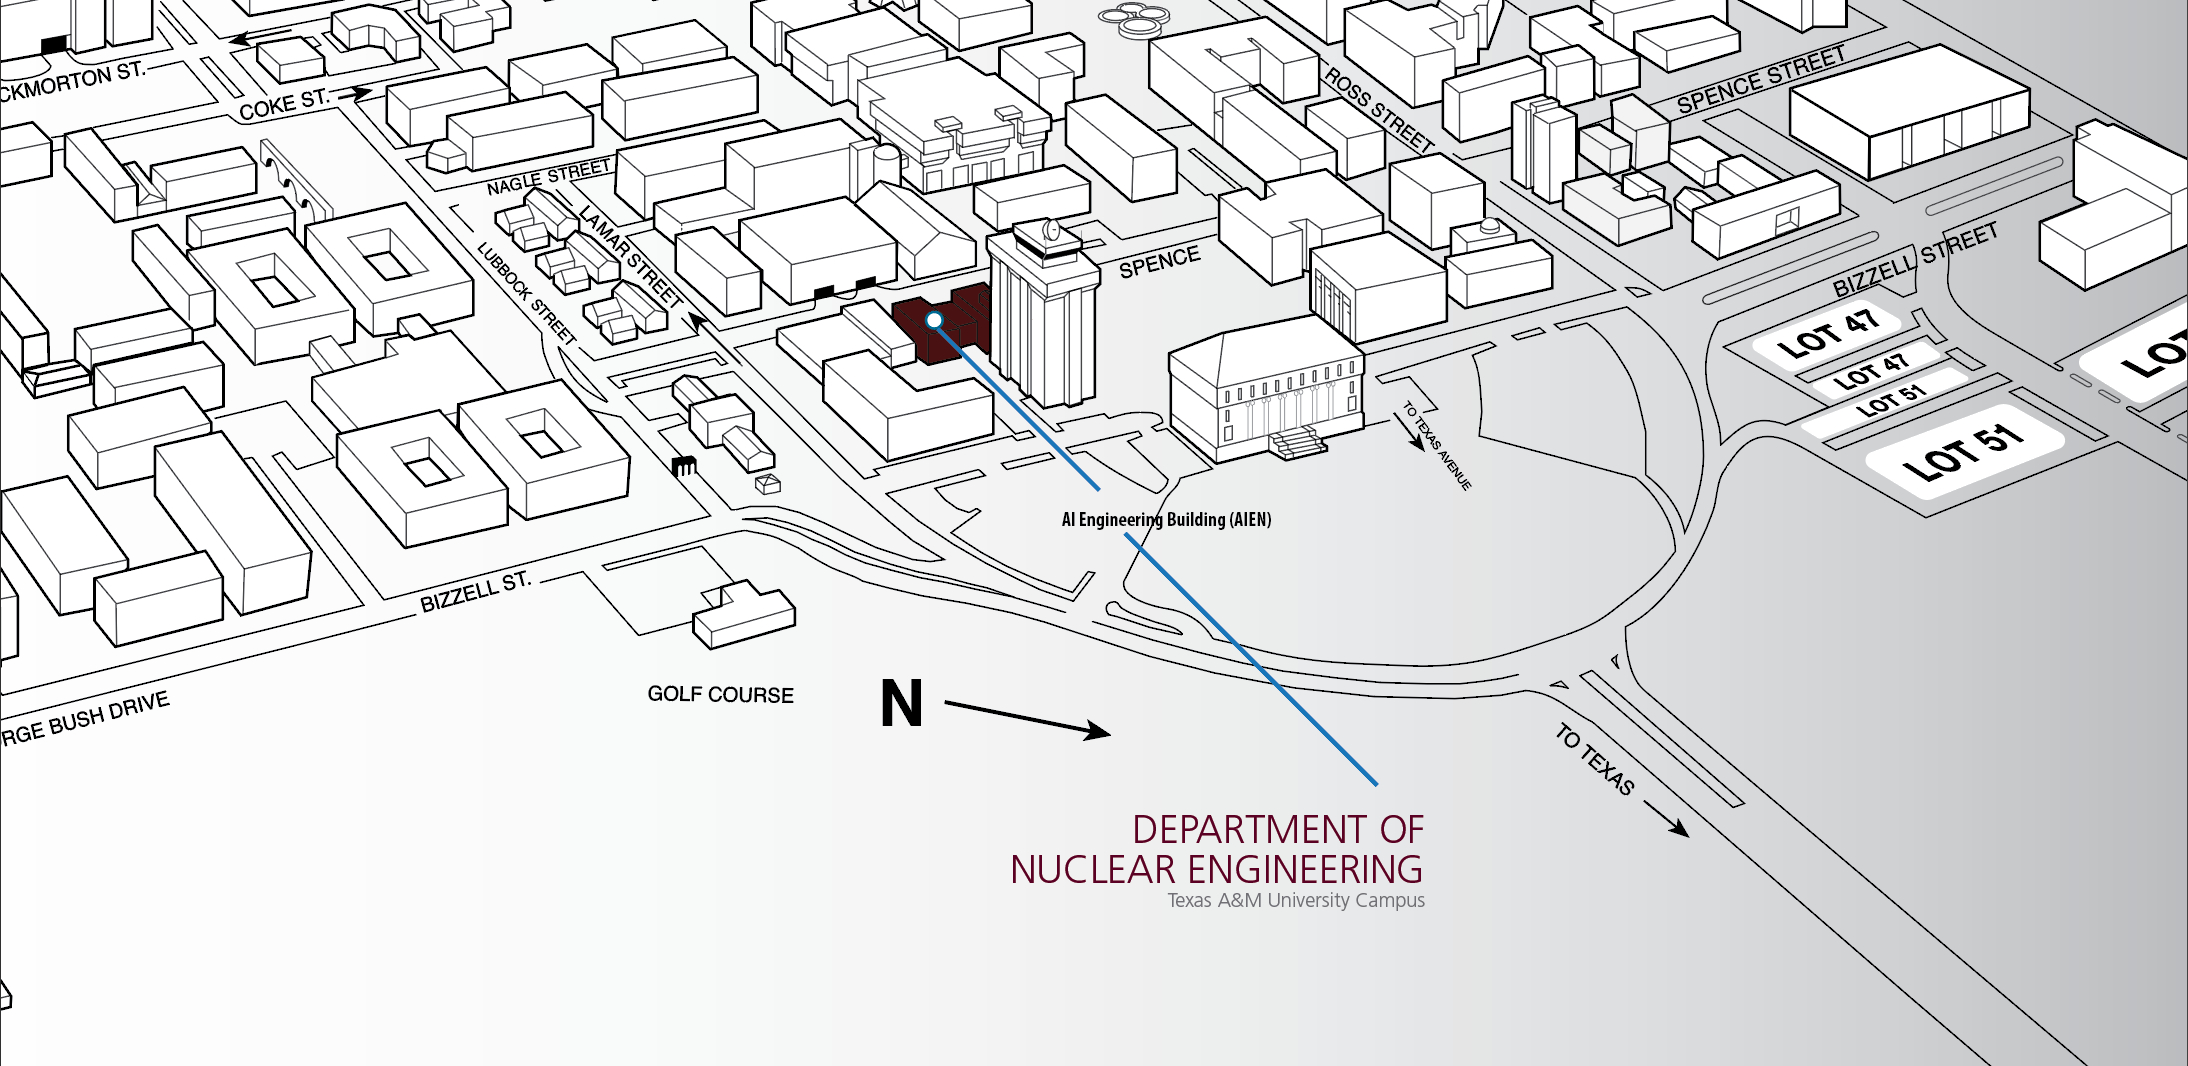 Maps & Directions | Texas A&m University Engineering - Texas A&m Location Map